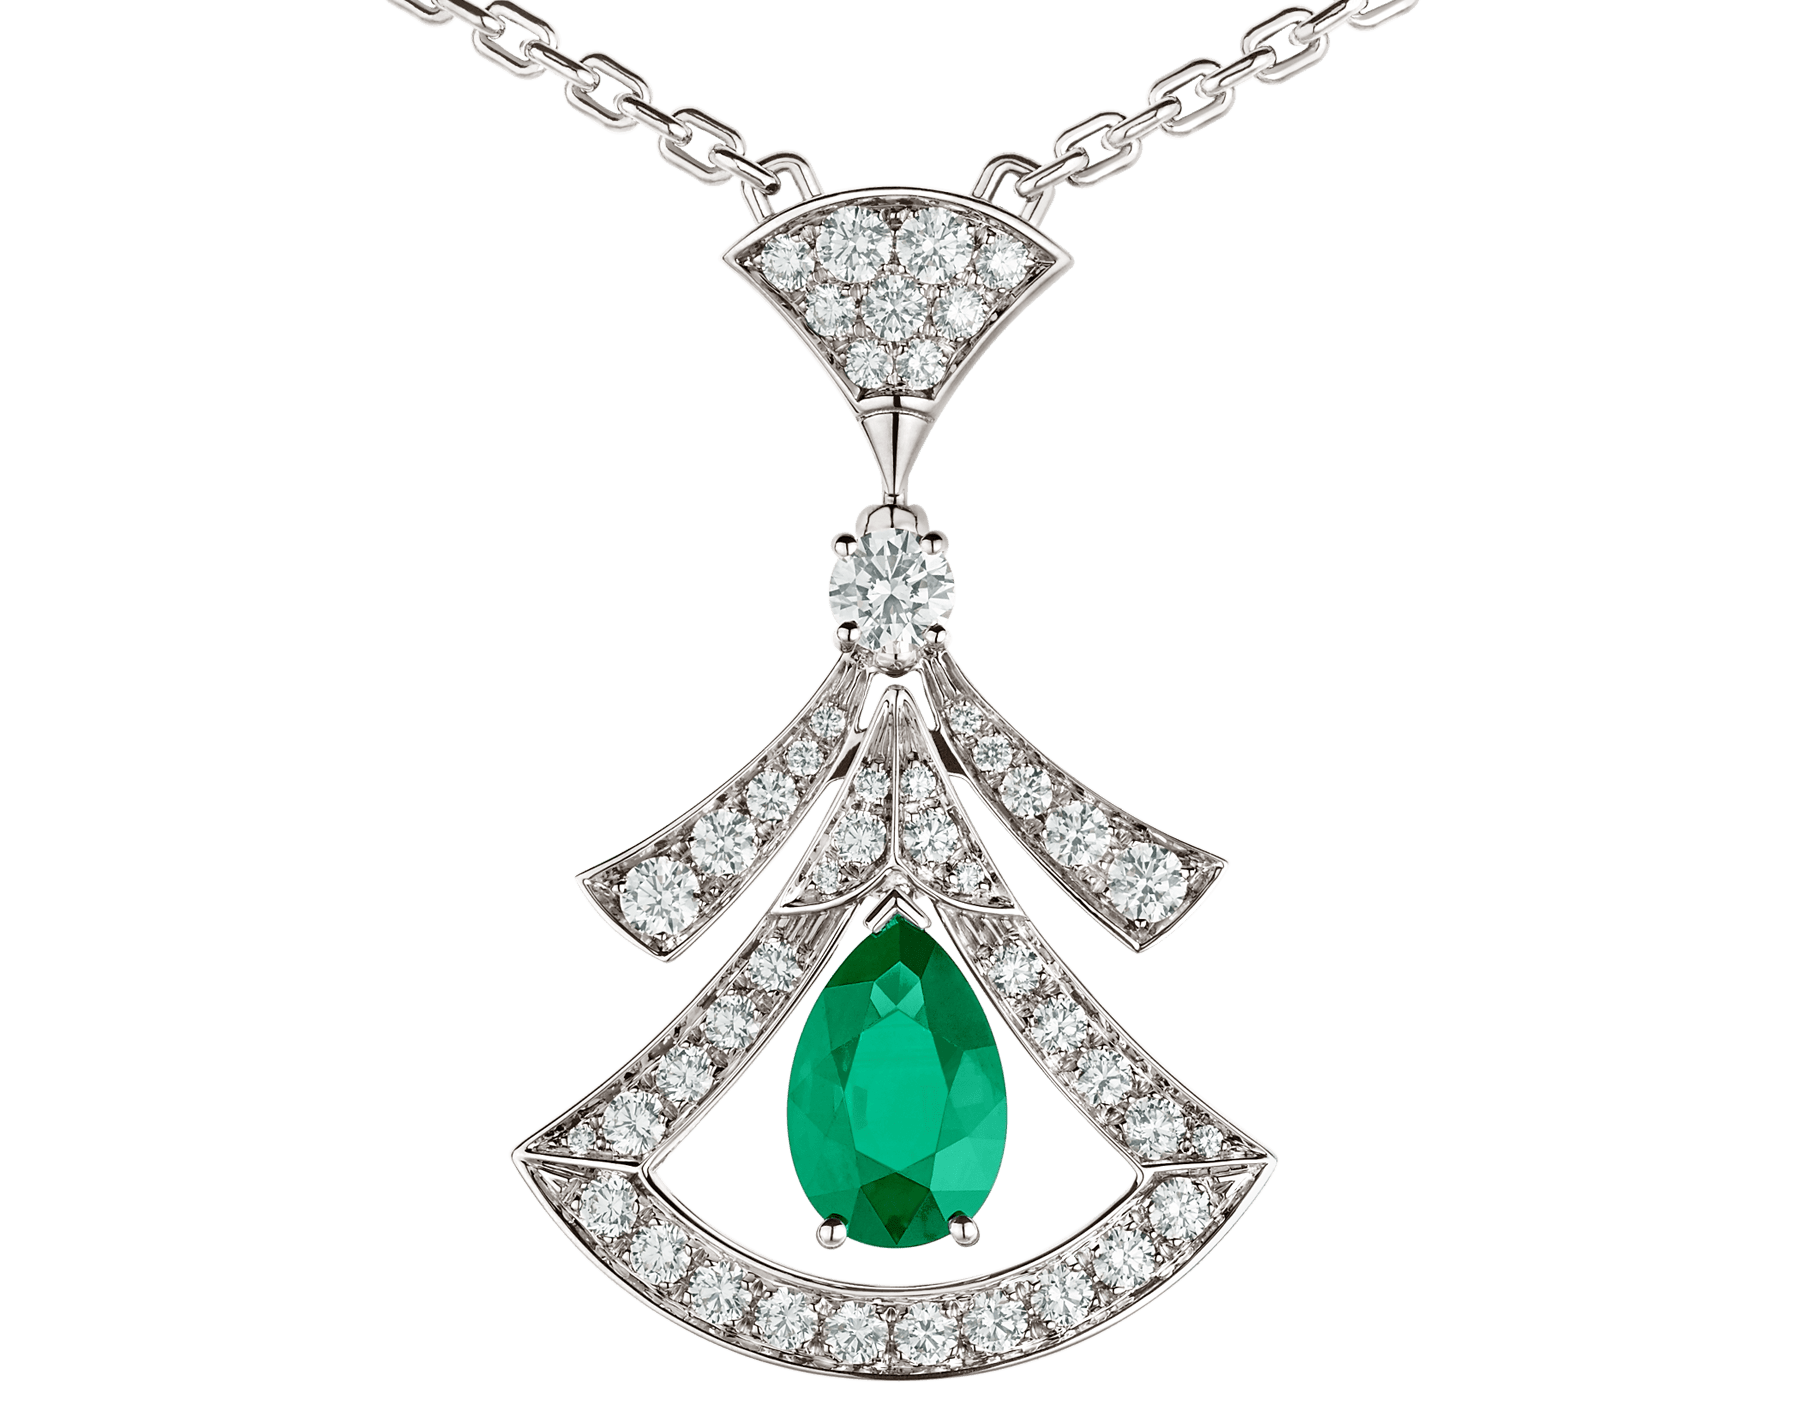 Collier ajouré DIVAS' DREAM en or blanc 18 K serti d'une émeraude taille poire (1,17 ct), émeraudes rondes taille brillant (0,60 ct), un diamant rond taille brillant et pavé diamants (0,86 ct) 356955 image 3